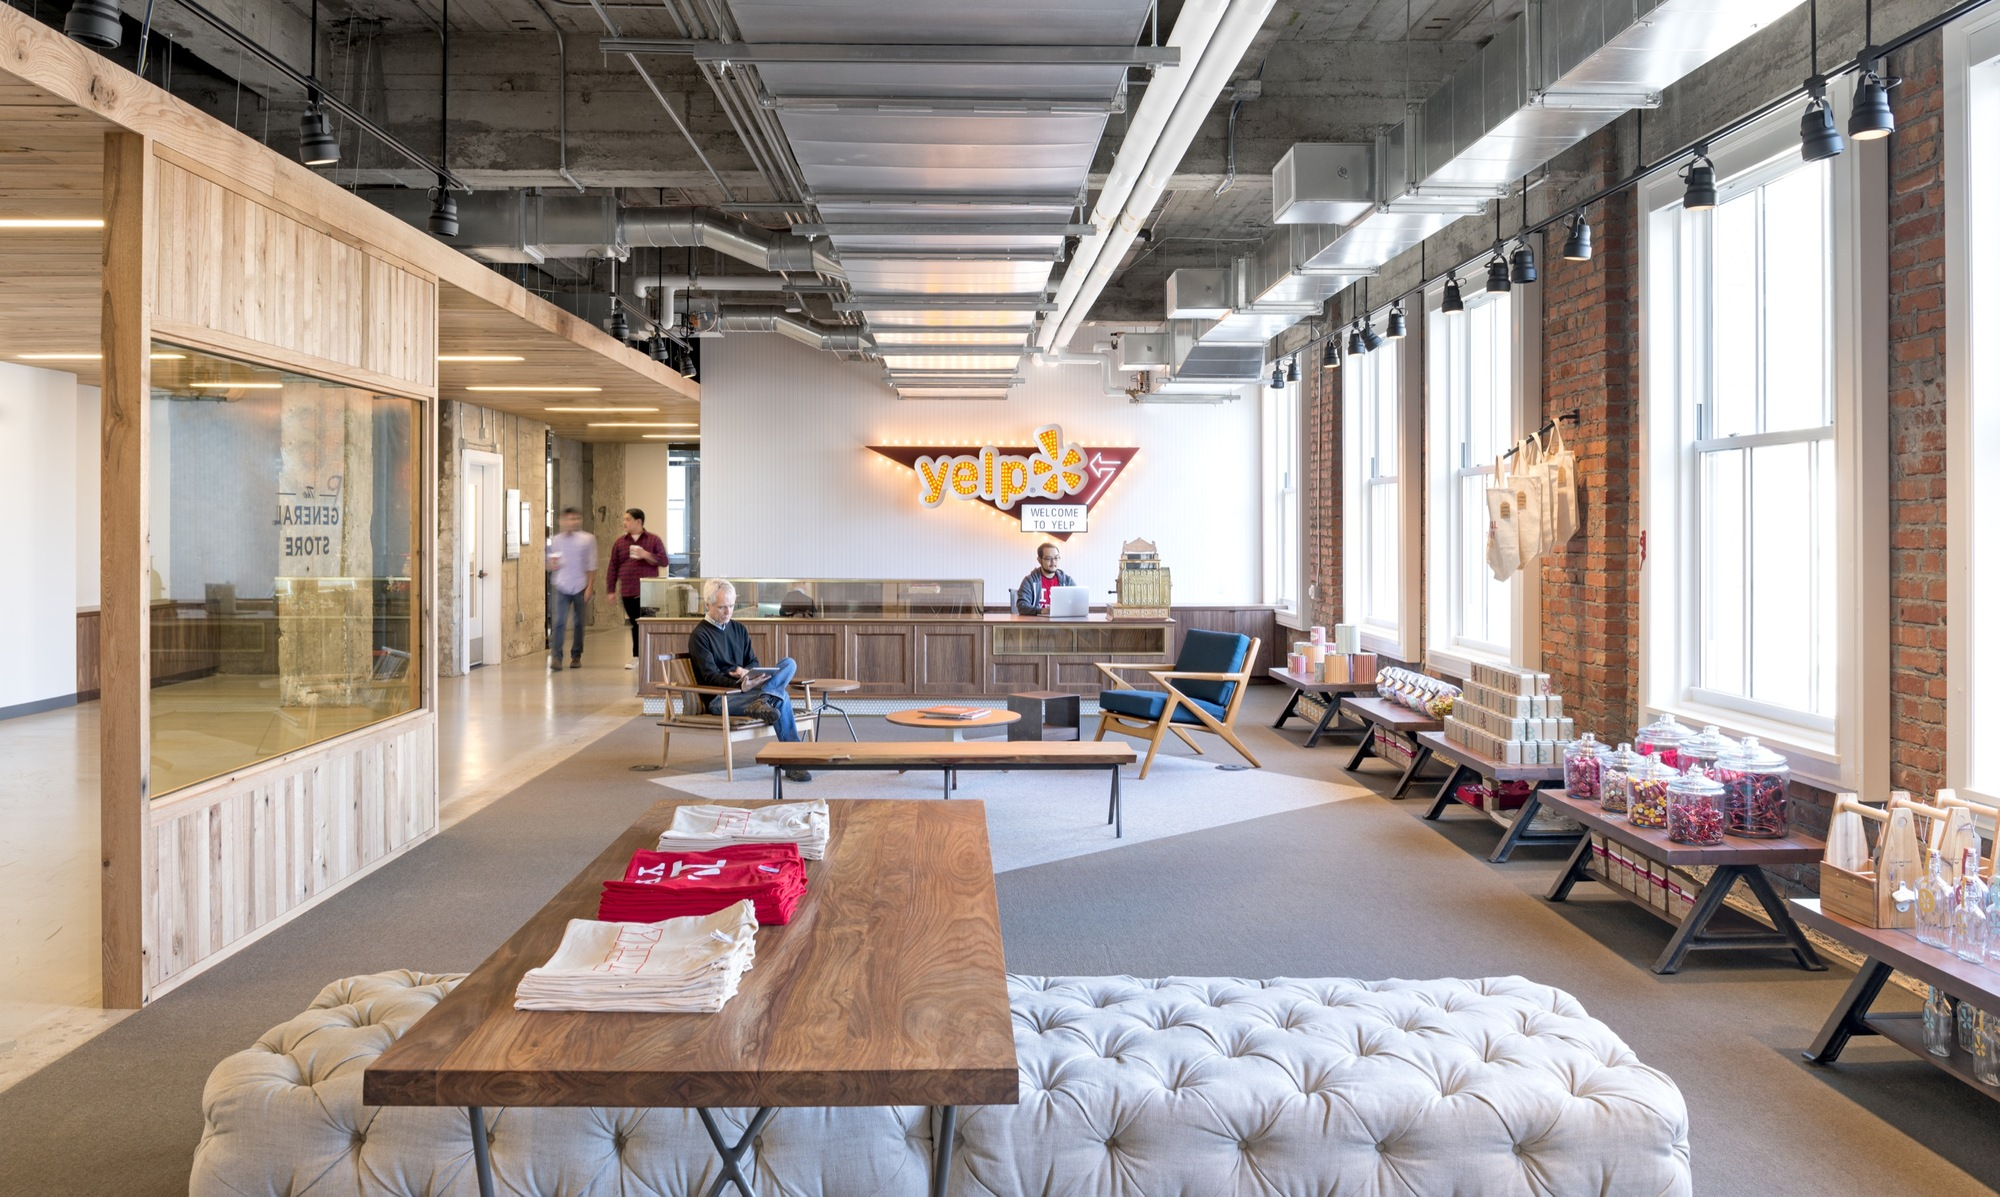 Exposed brick walls concrete define the new yelp headquarters